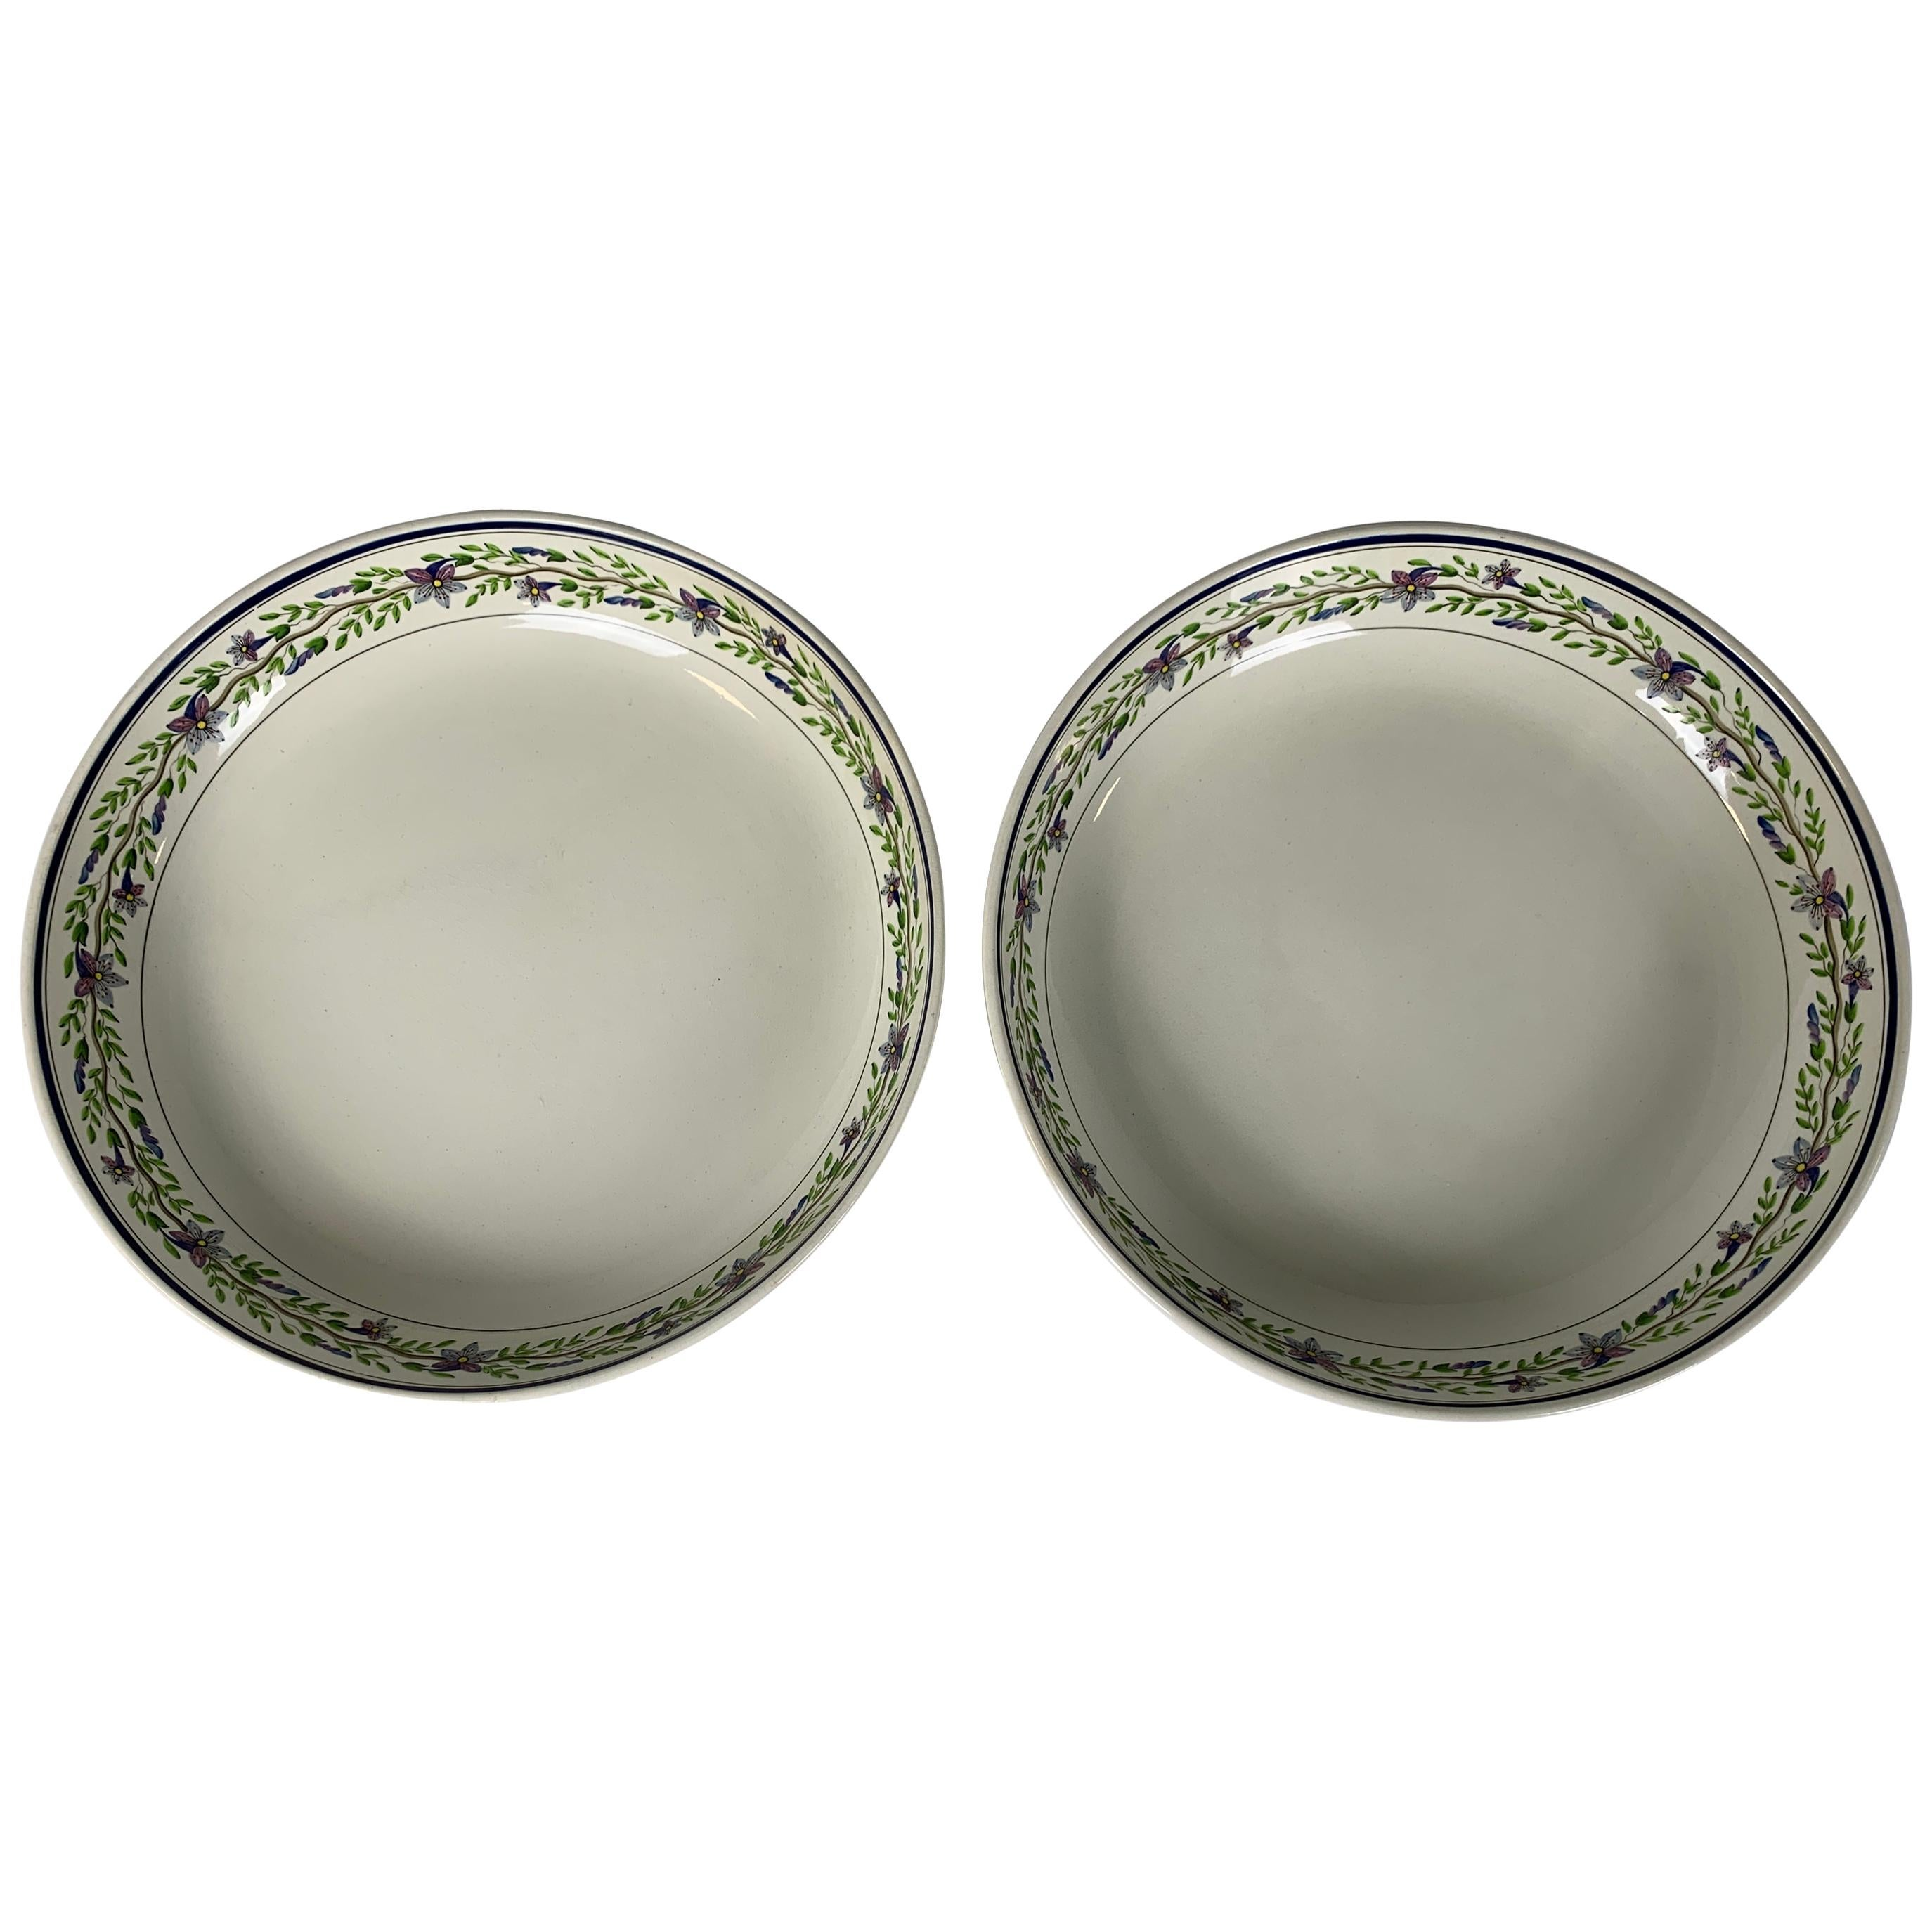 Pair of Large Wedgwood Bowls Made in England, circa 1820